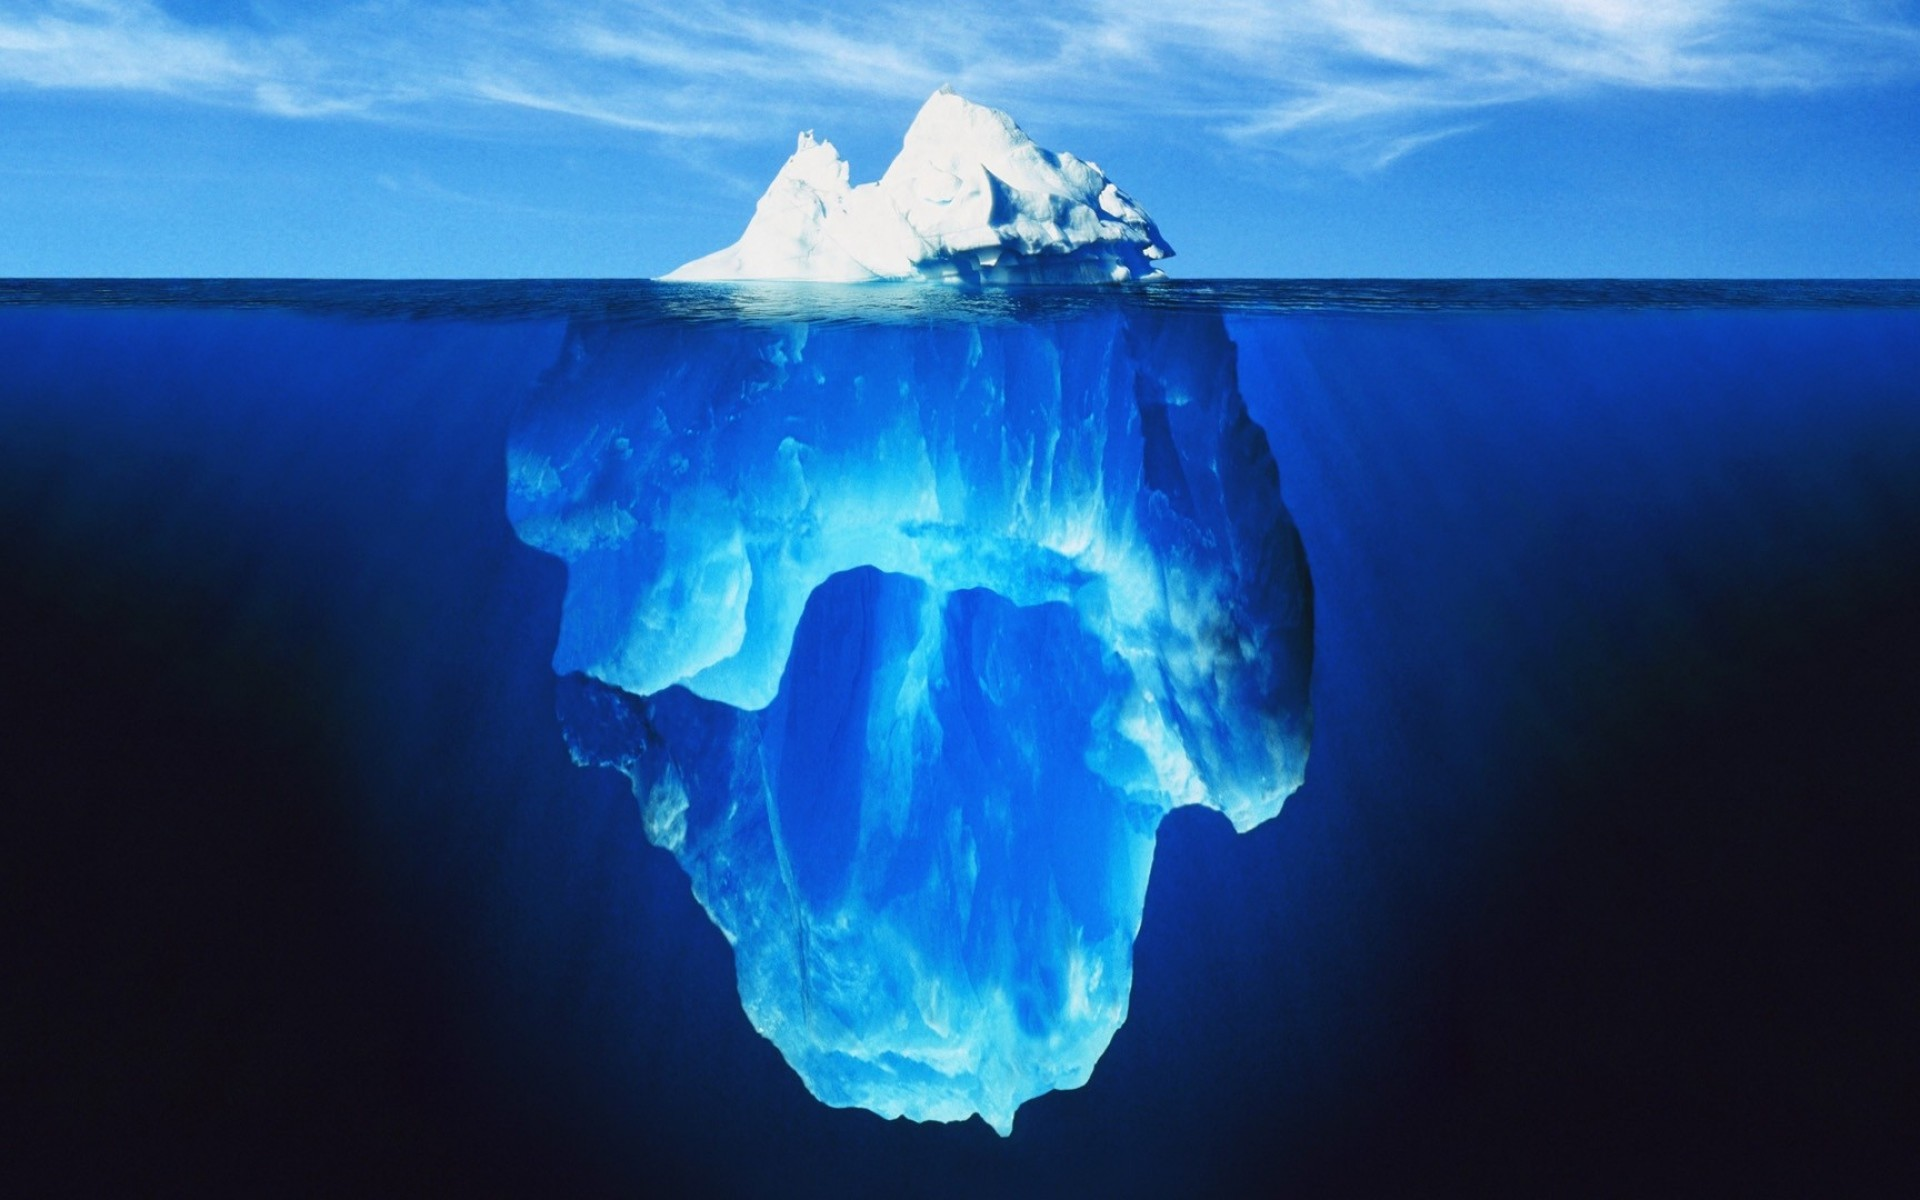 1920x1200 Bild: Deep Blue Ocean & Ice Berg wallpapers and stock photos. Â«